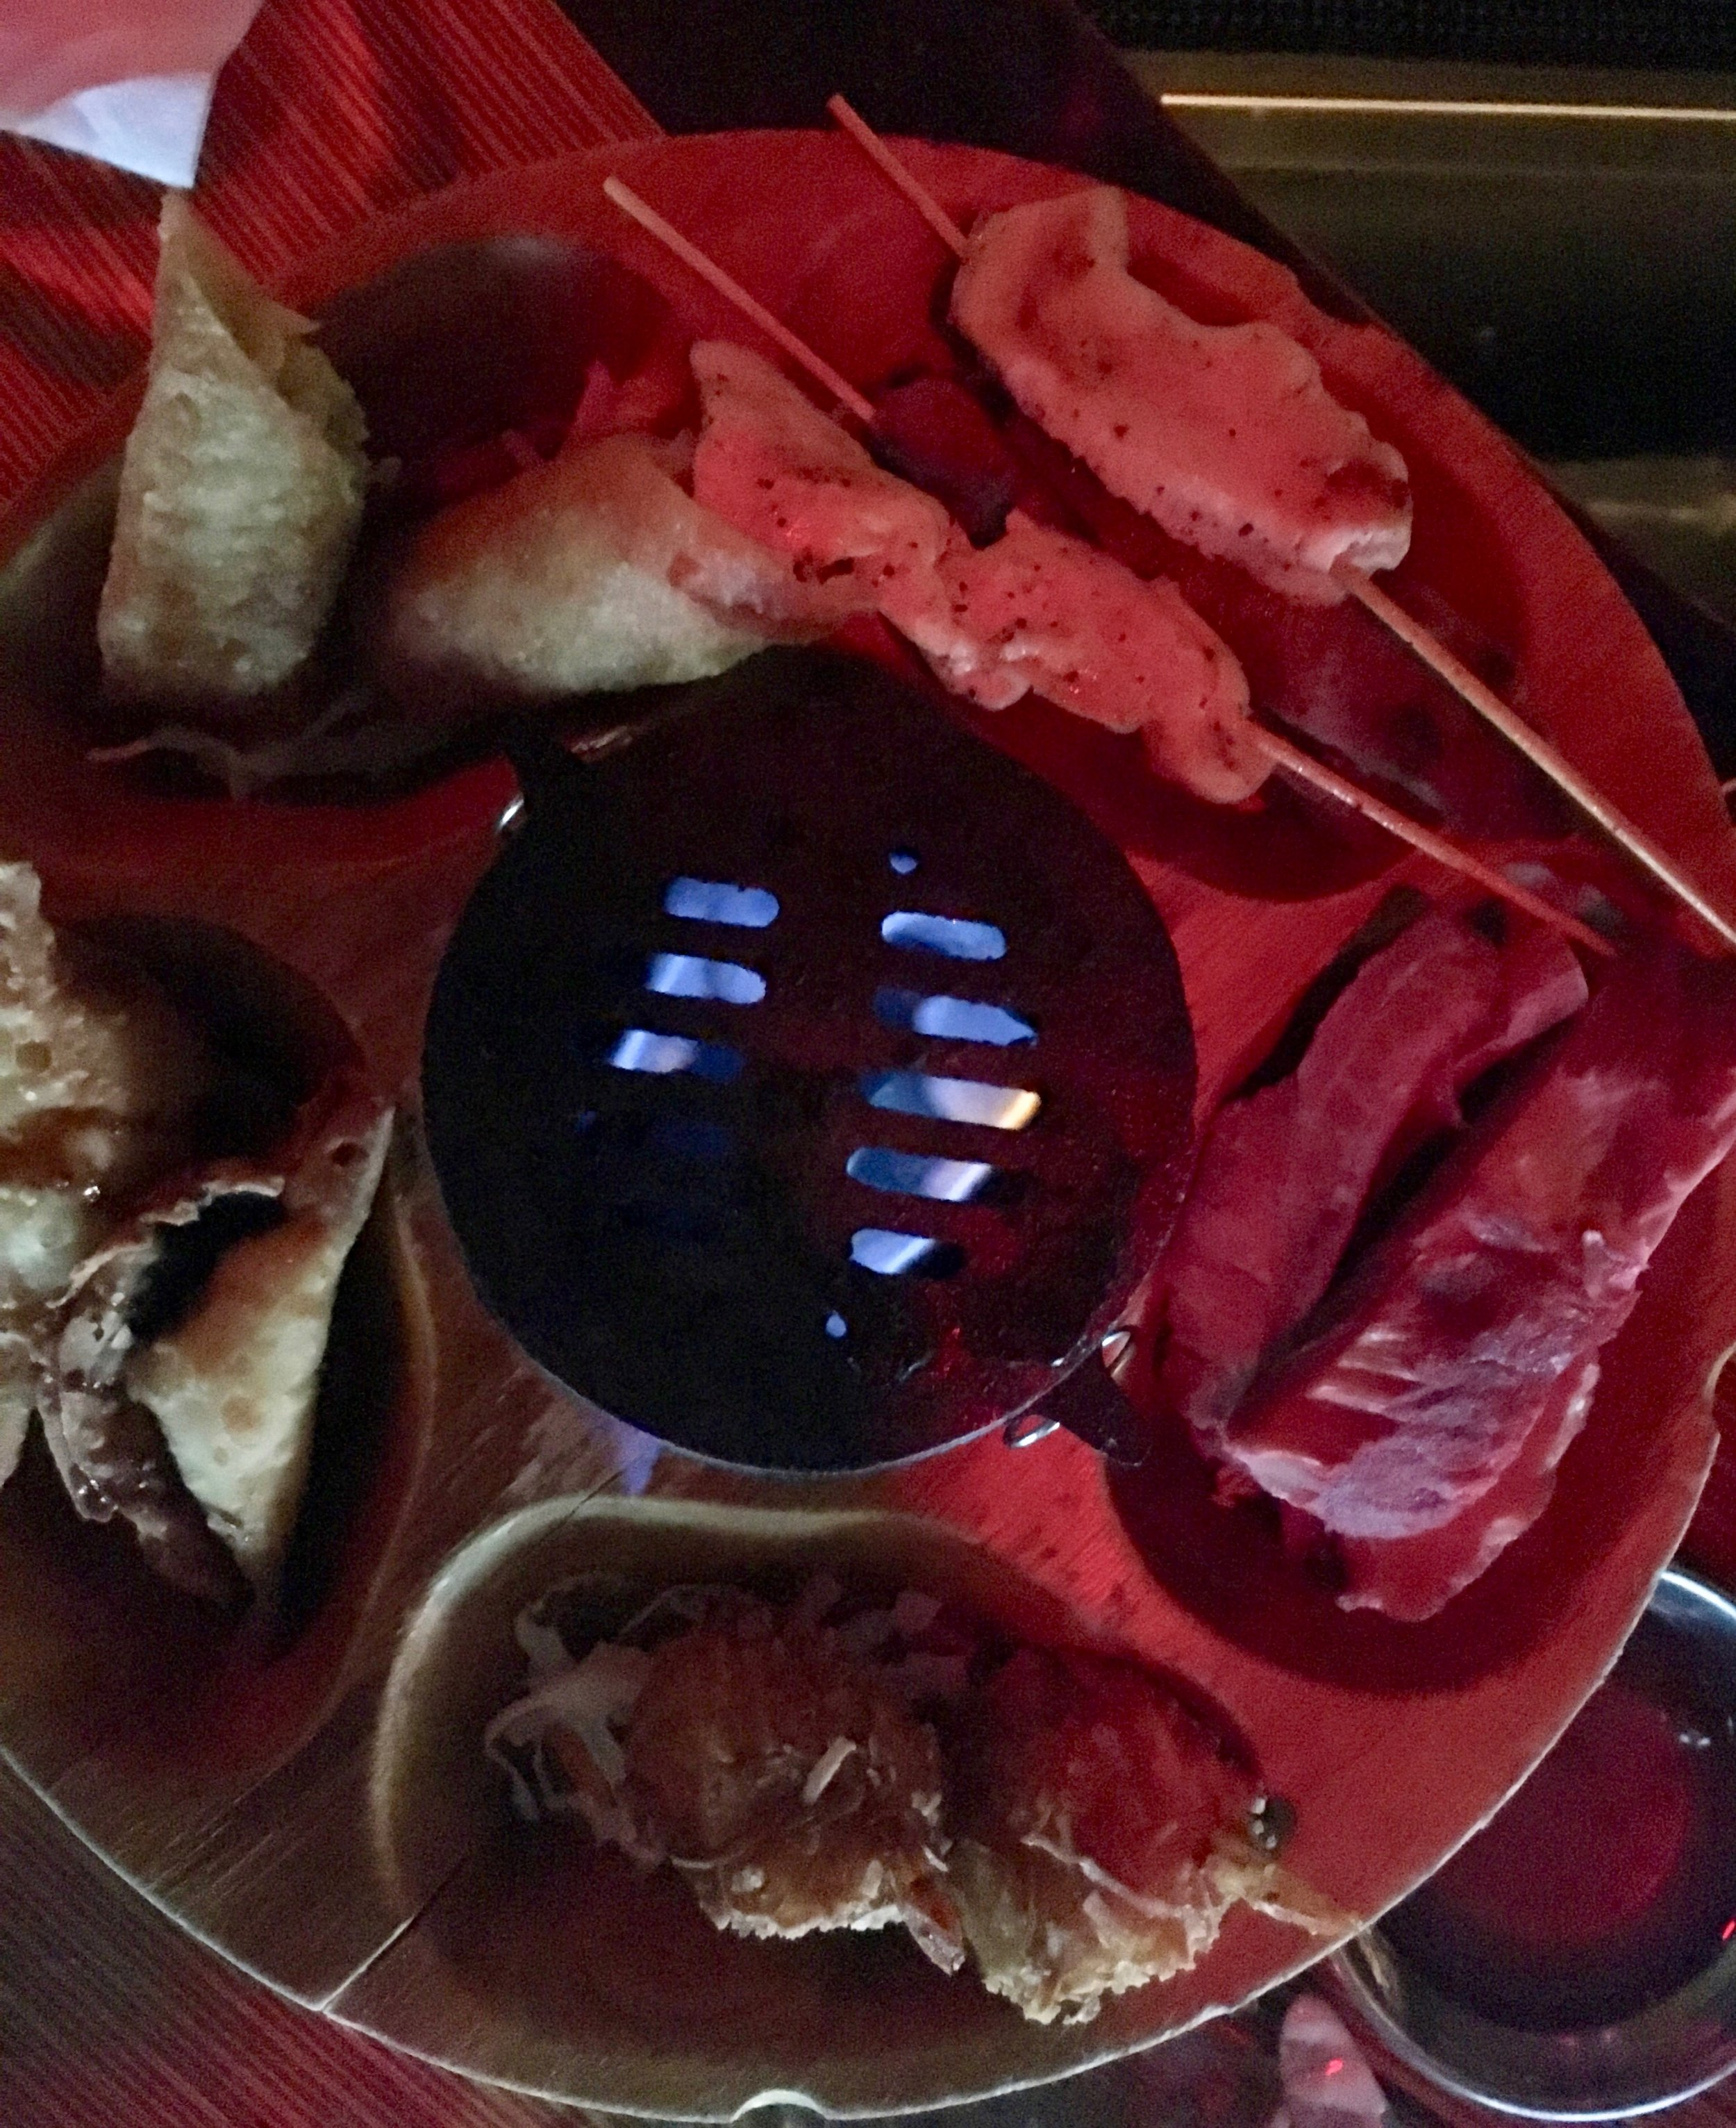 tonga-hut-palm-springs-pupu-platter.jpg